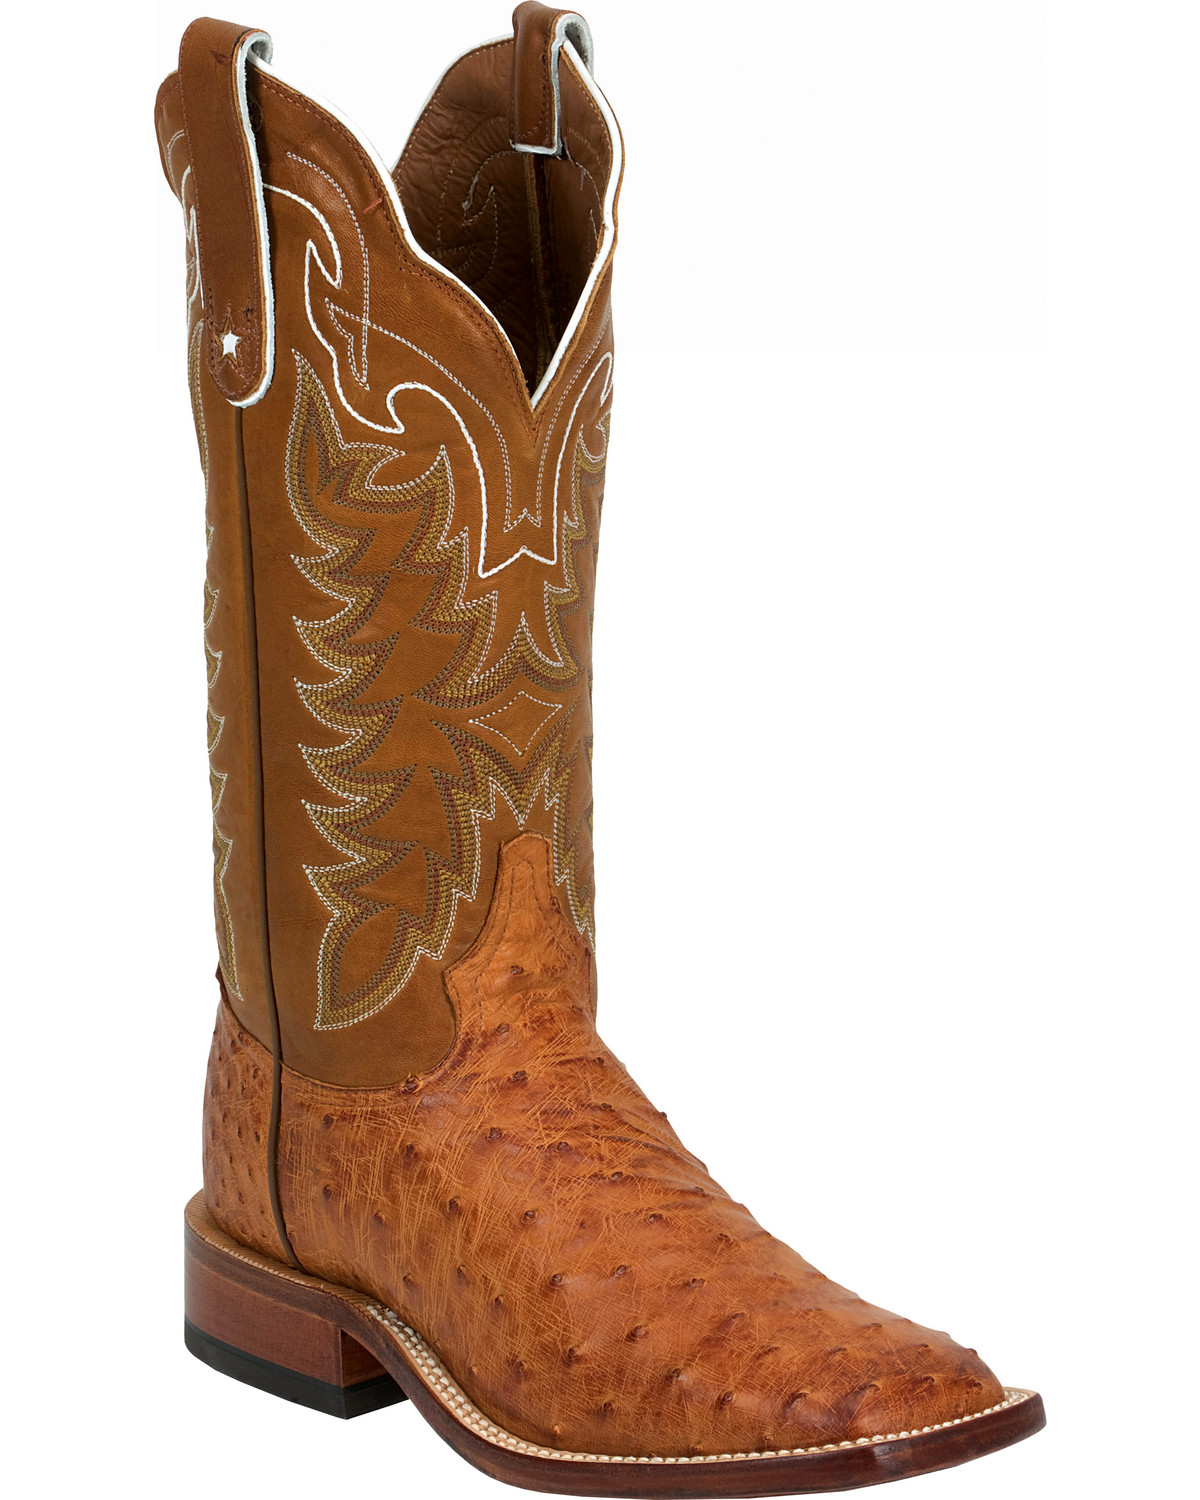 b58d45a2aa4 Tony Lama Vintage Full Quill Ostrich Cowboy Boots - Wide Square Toe